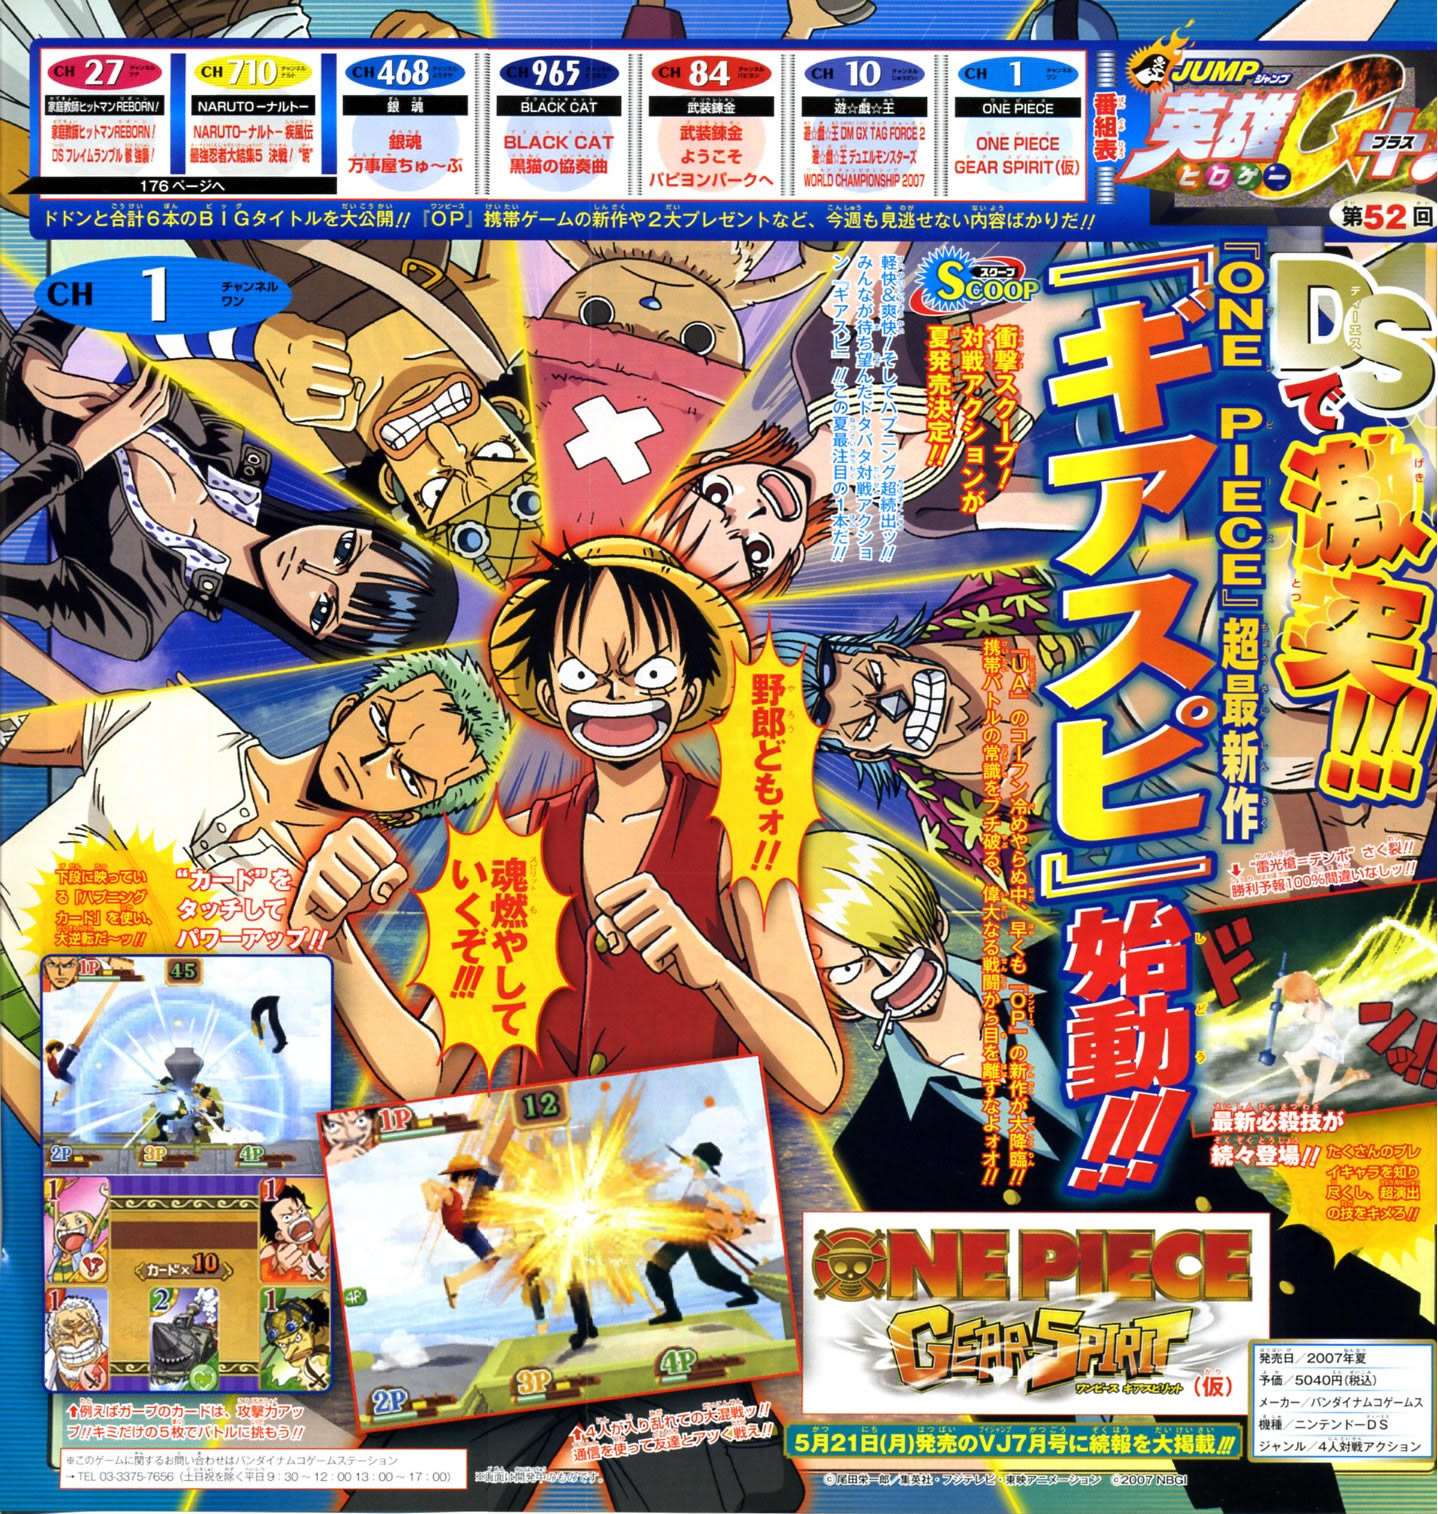 One Piece: Gear Spirit Announced